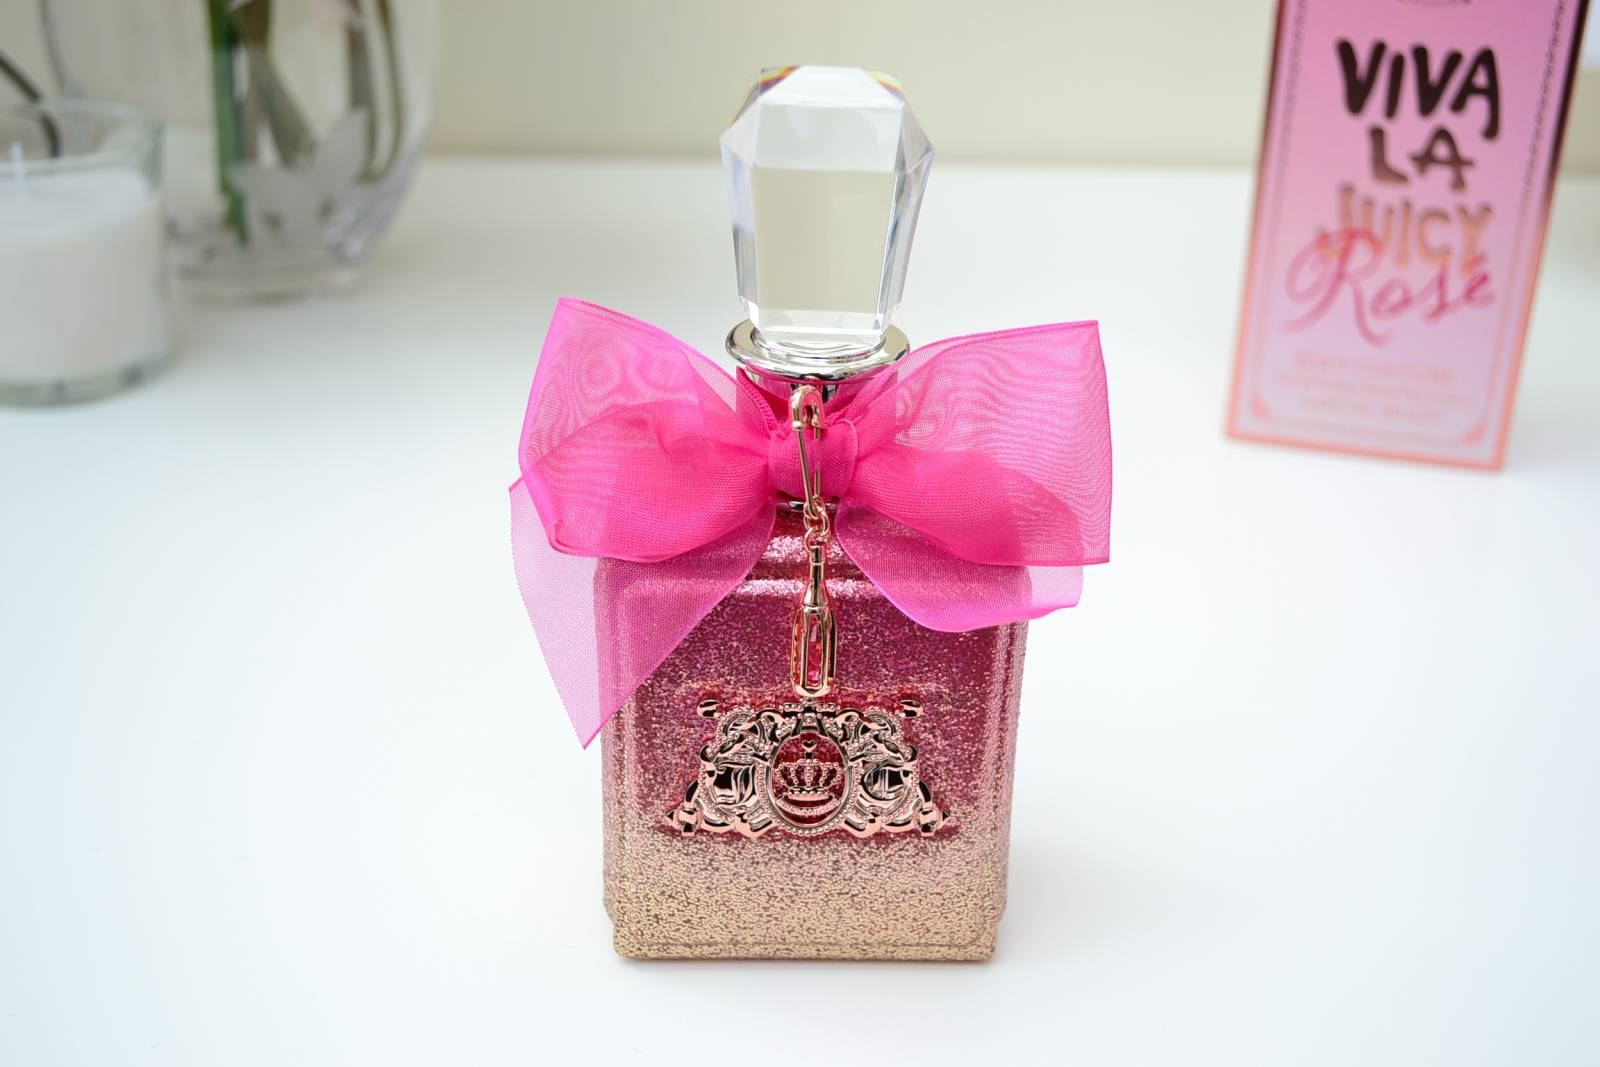 juicy-couture-viva-la-juicy-rose